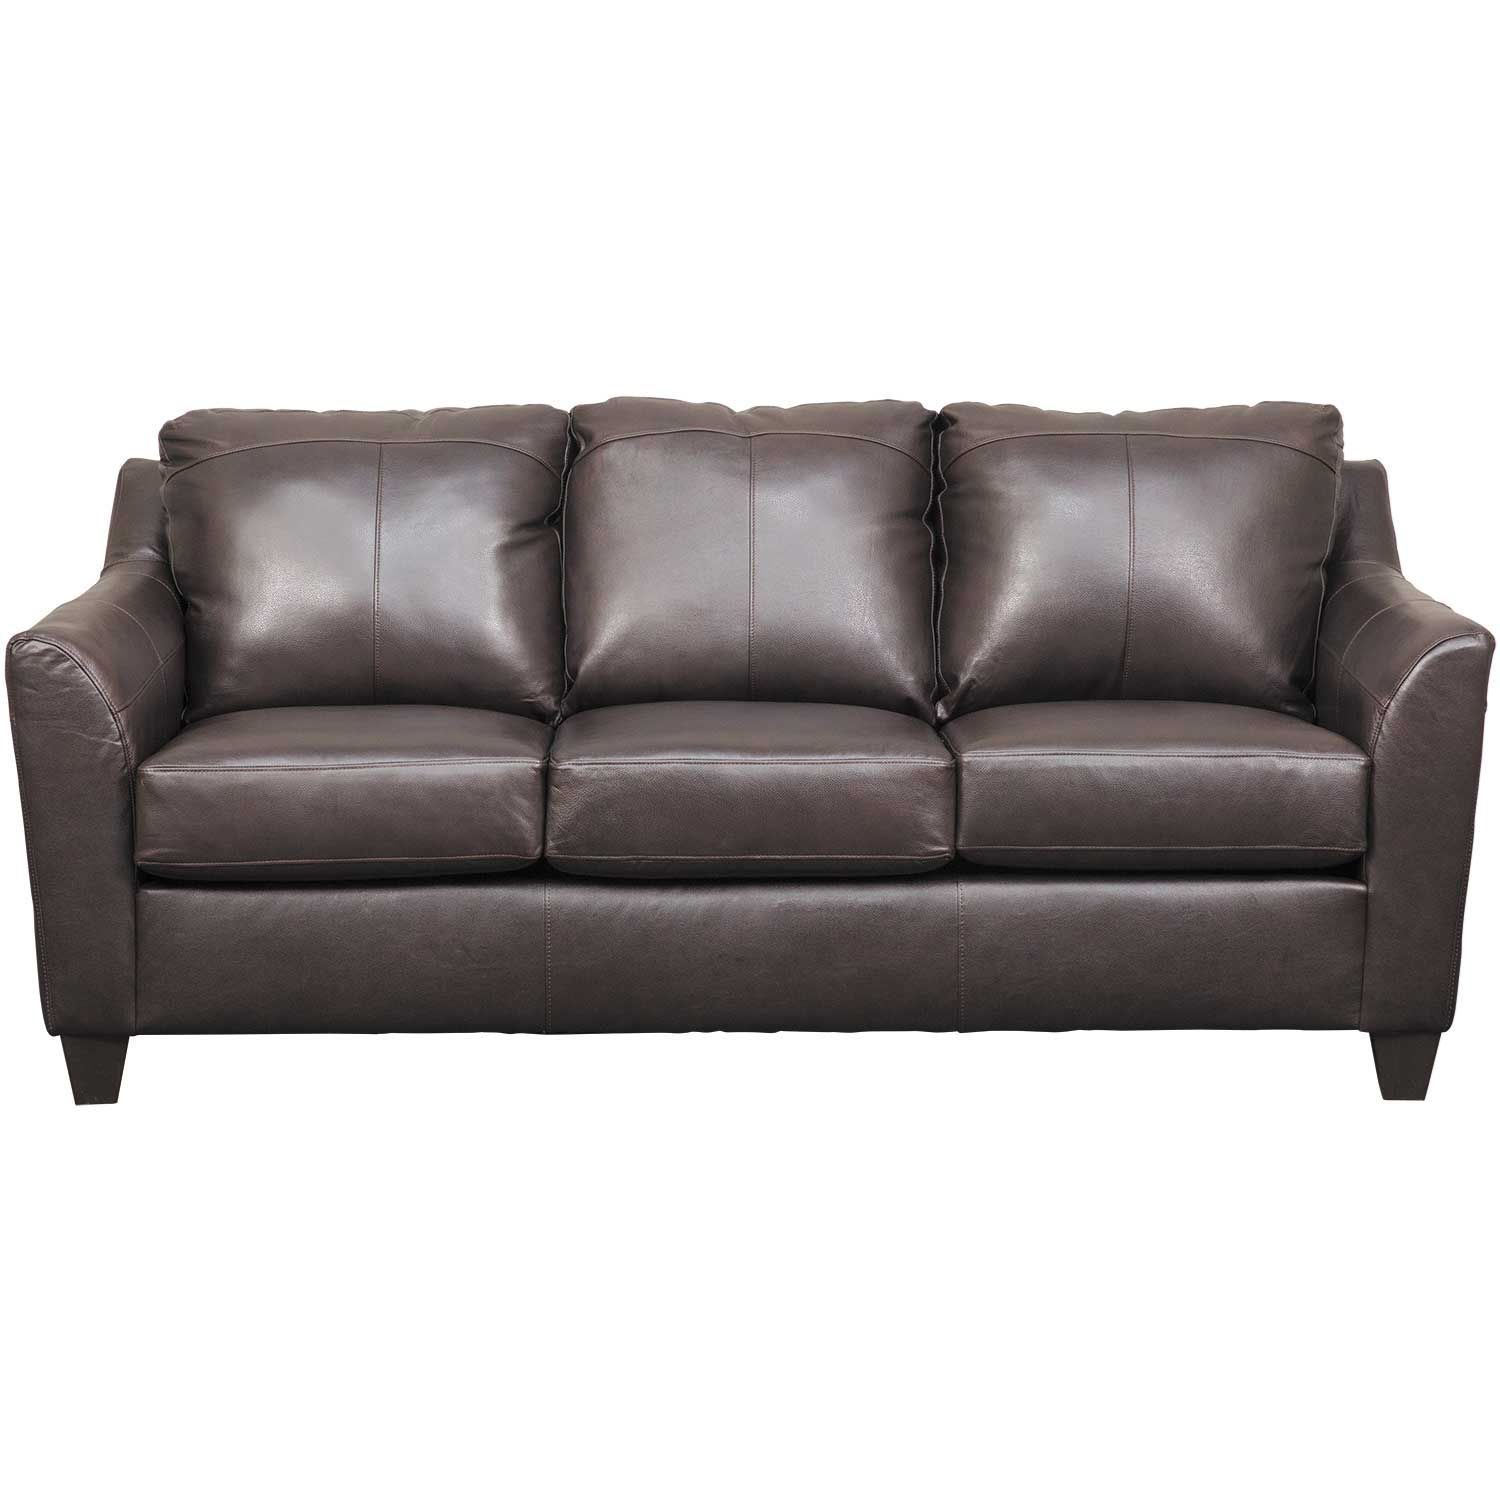 Declan Bark Leather Sofa